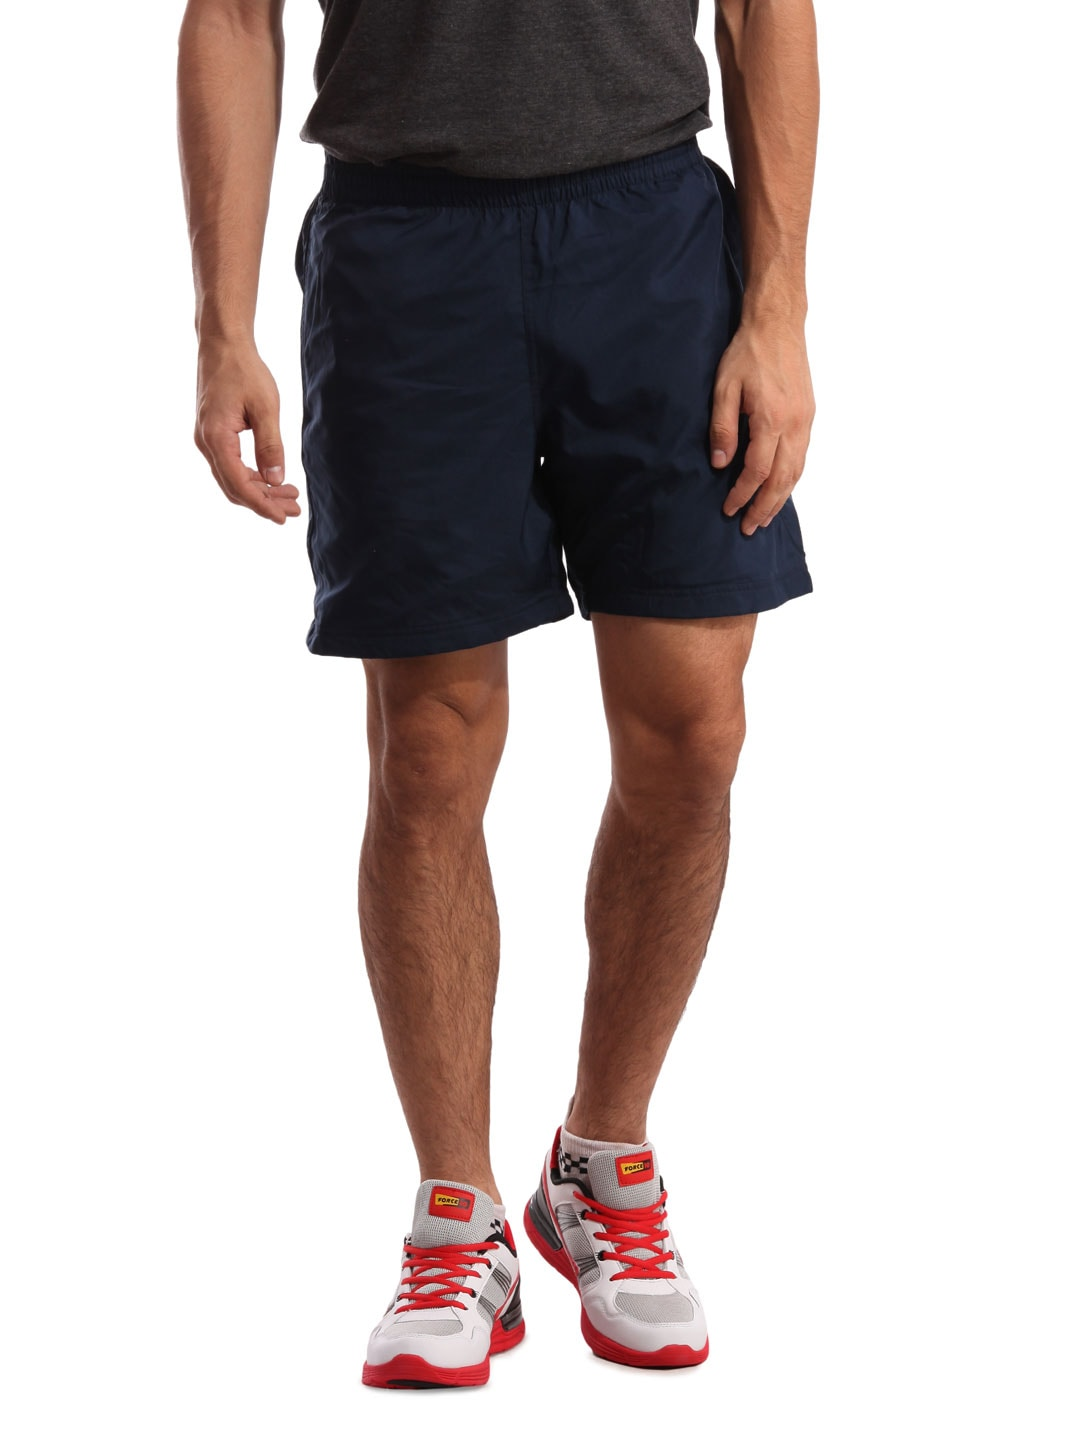 Adidas Adidas Men Navy Blue Shorts (Multicolor)